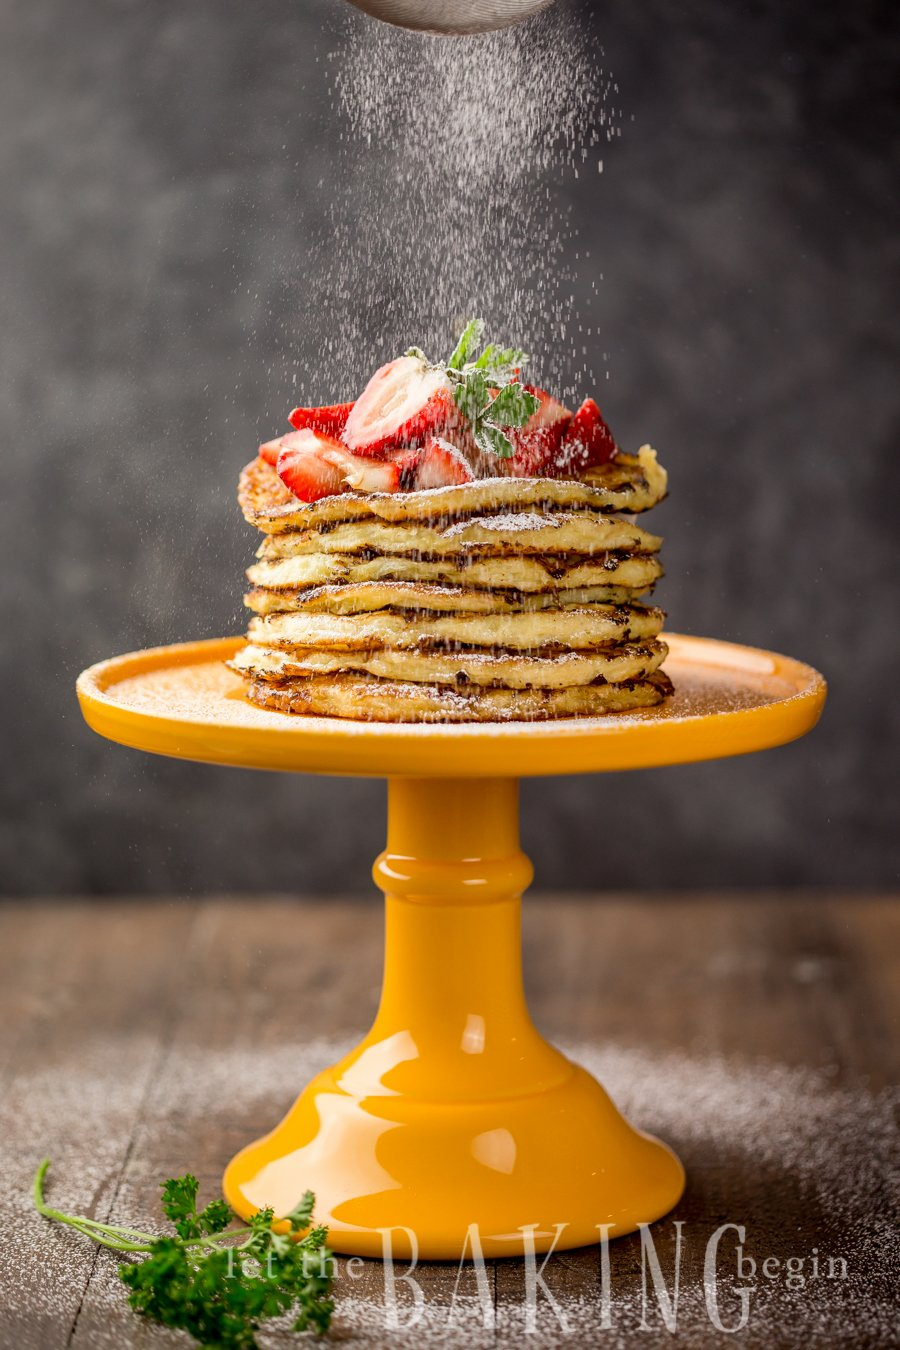 Powdered sugar being sprinkled on a yellow platter of cottage cheese pancakes topped with fresh strawberries.